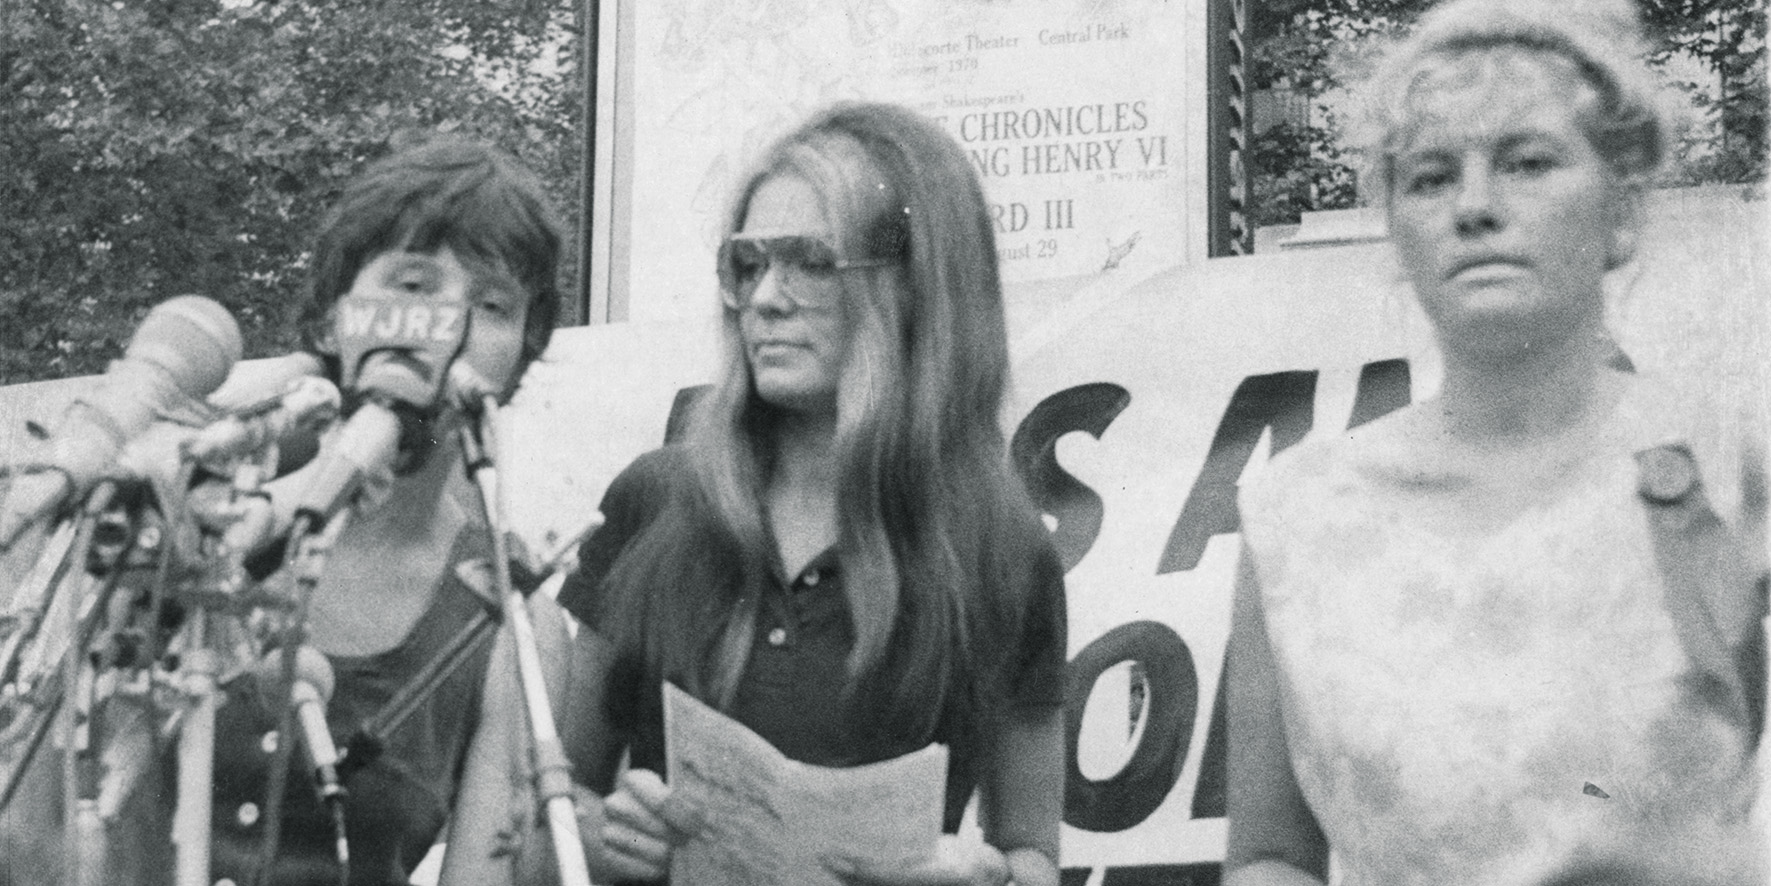 50 Years Ago, Gloria Steinem Wrote an Essay For TIME About Her Hopes For Women's Futures. Here's What She'd Add Today